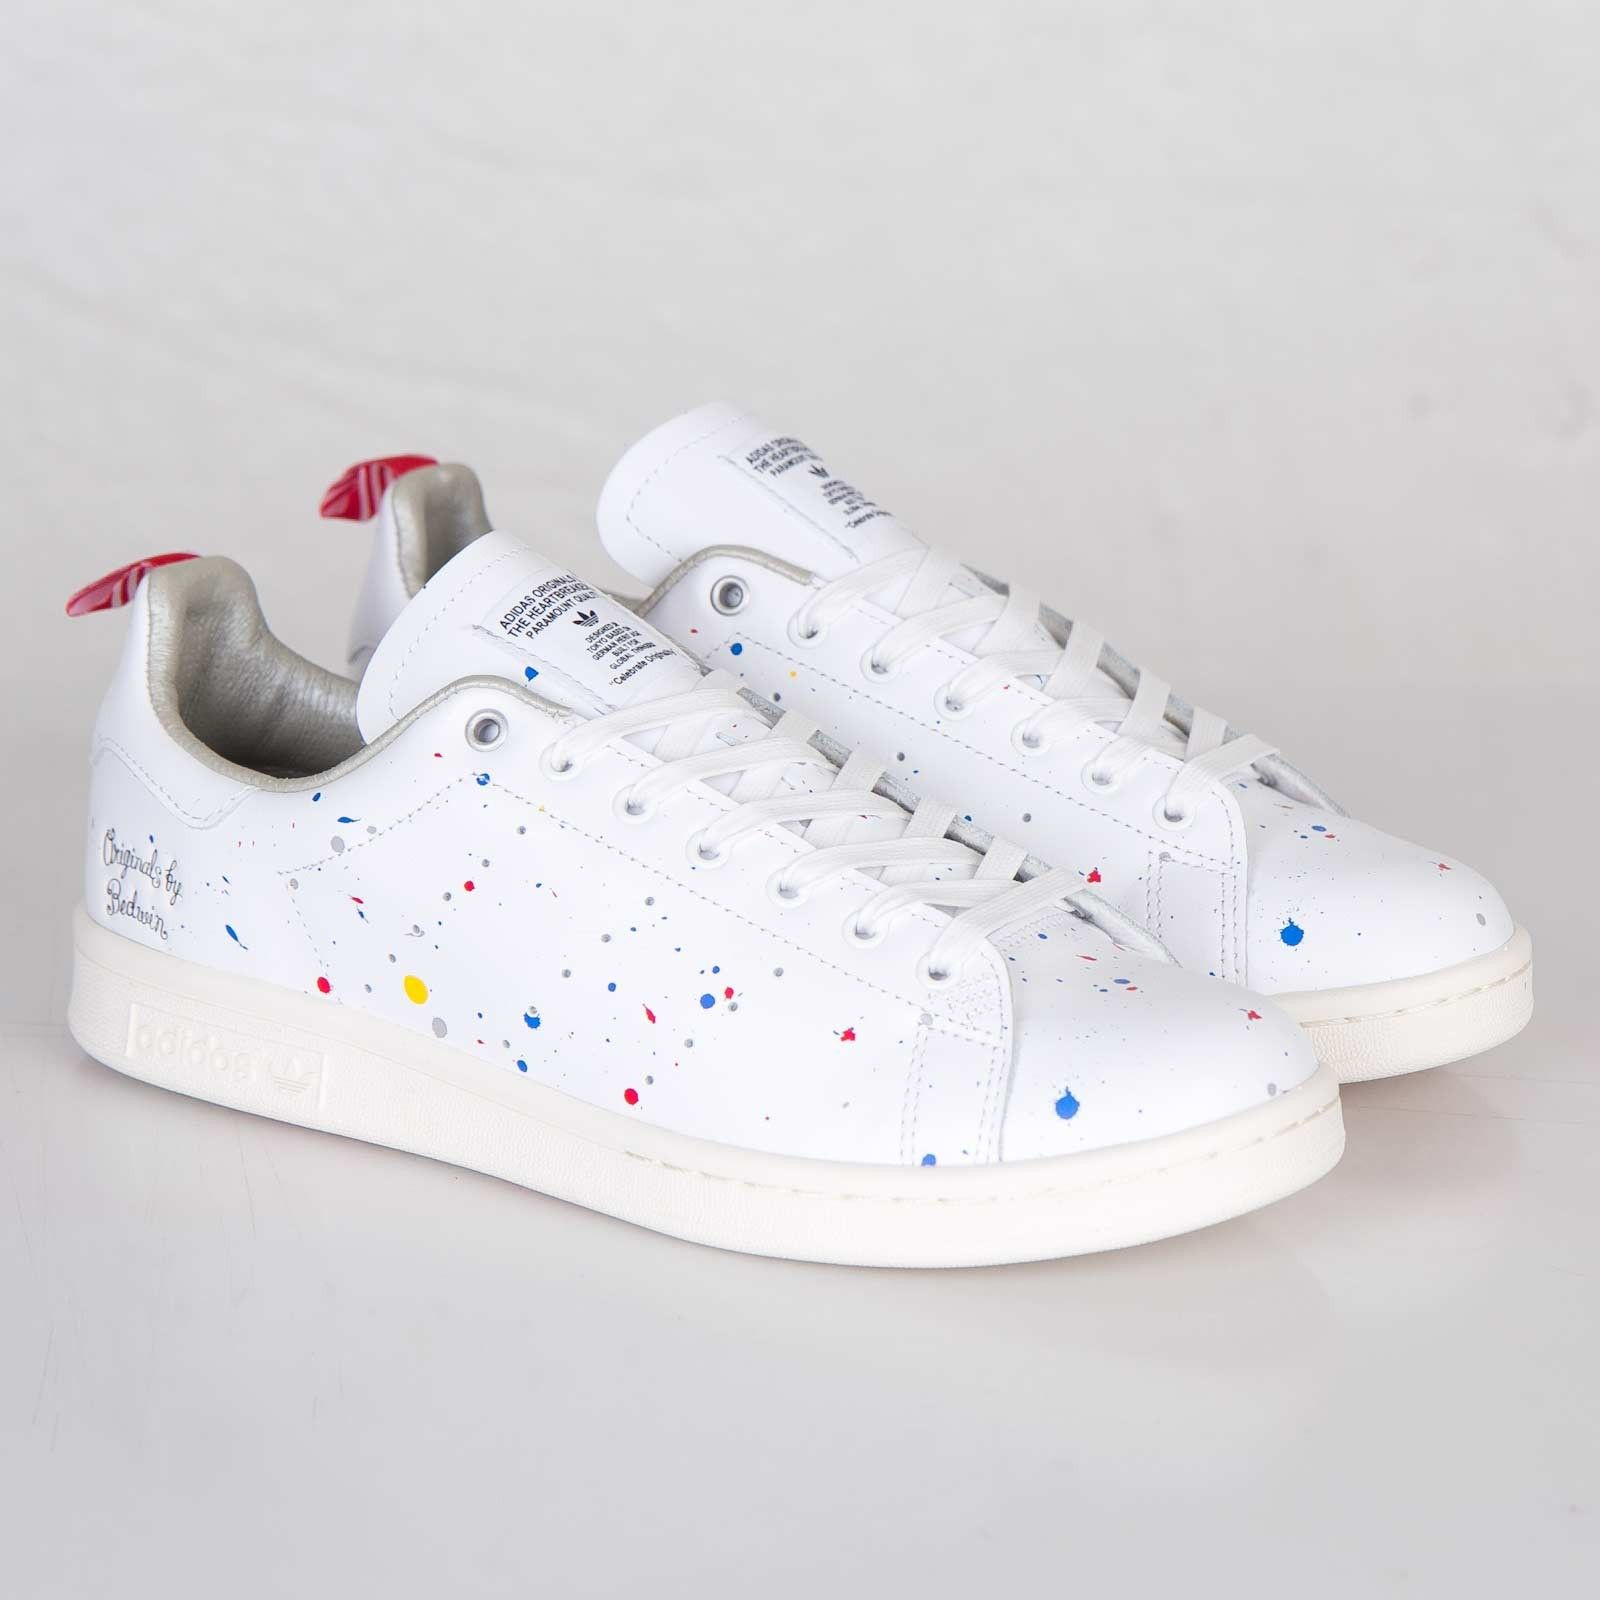 adidas stan smith gum sole mens adidas gazelle womens grey